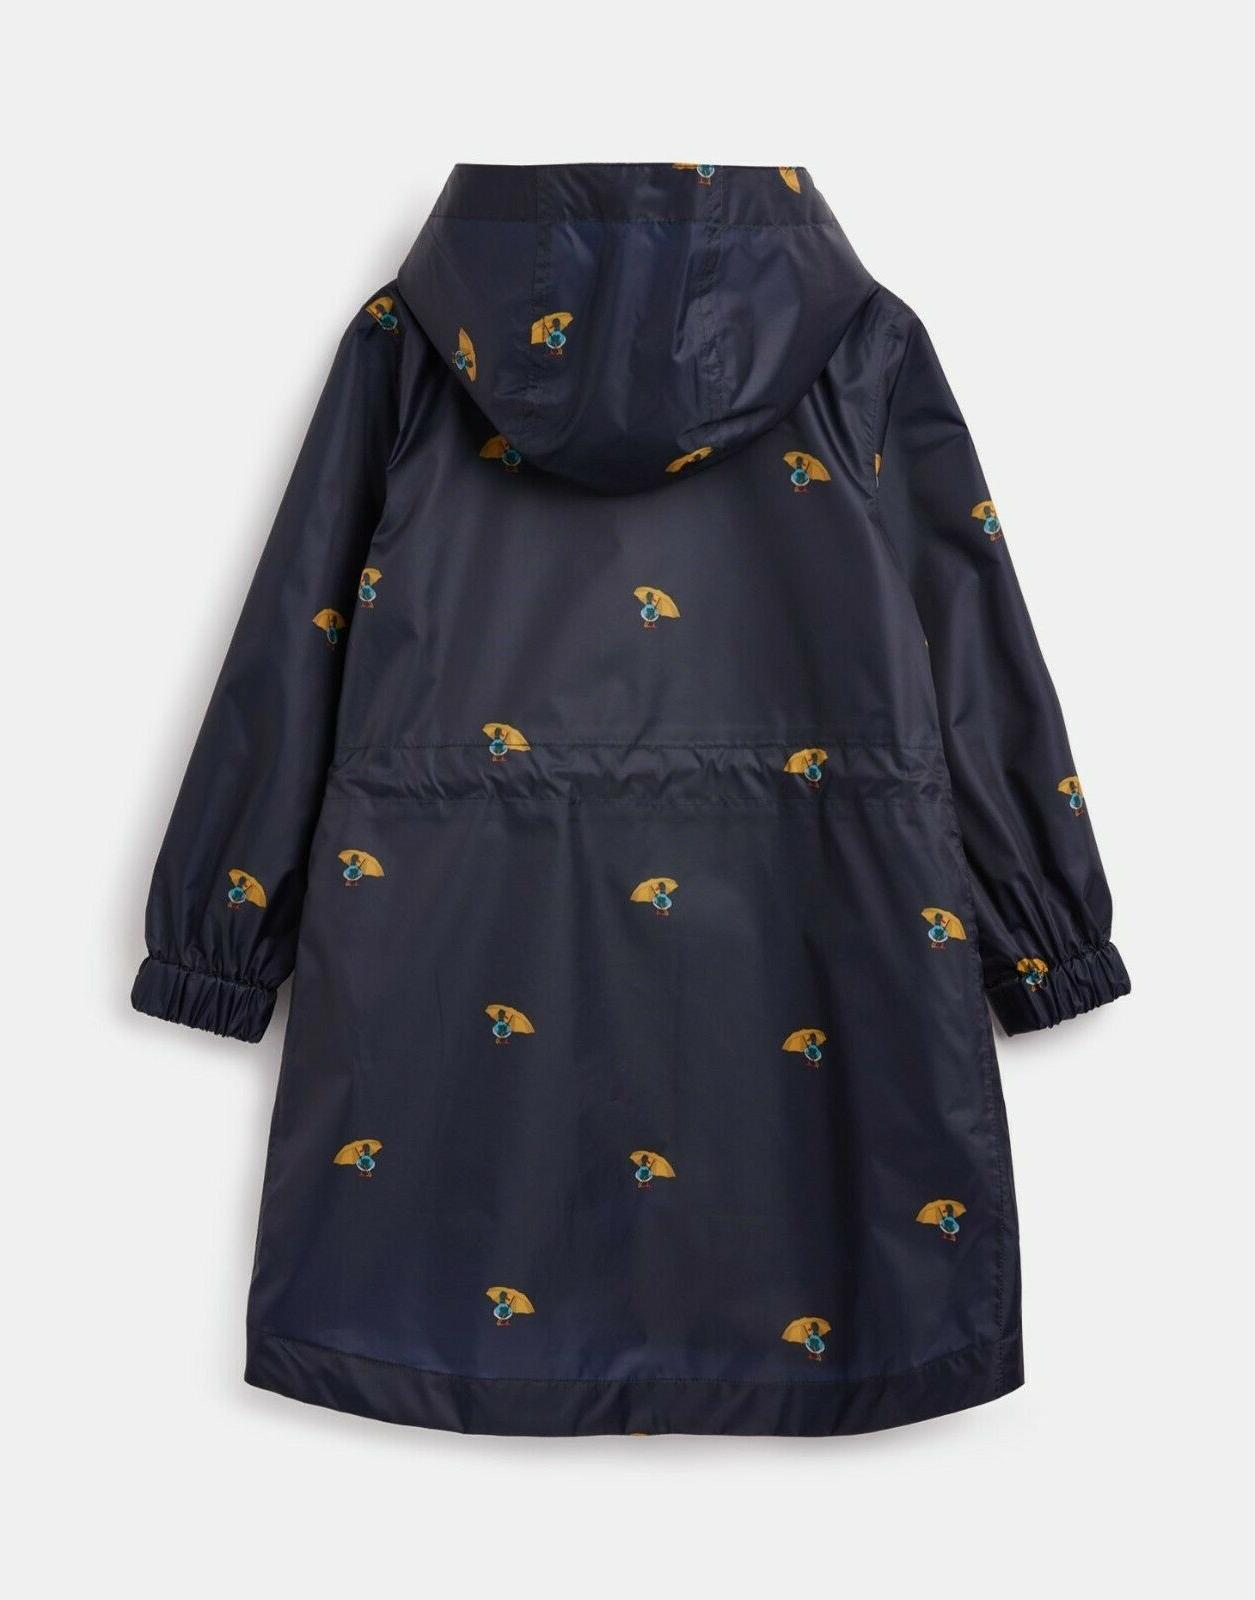 Joules Toddler Packaway Duck Size 3T